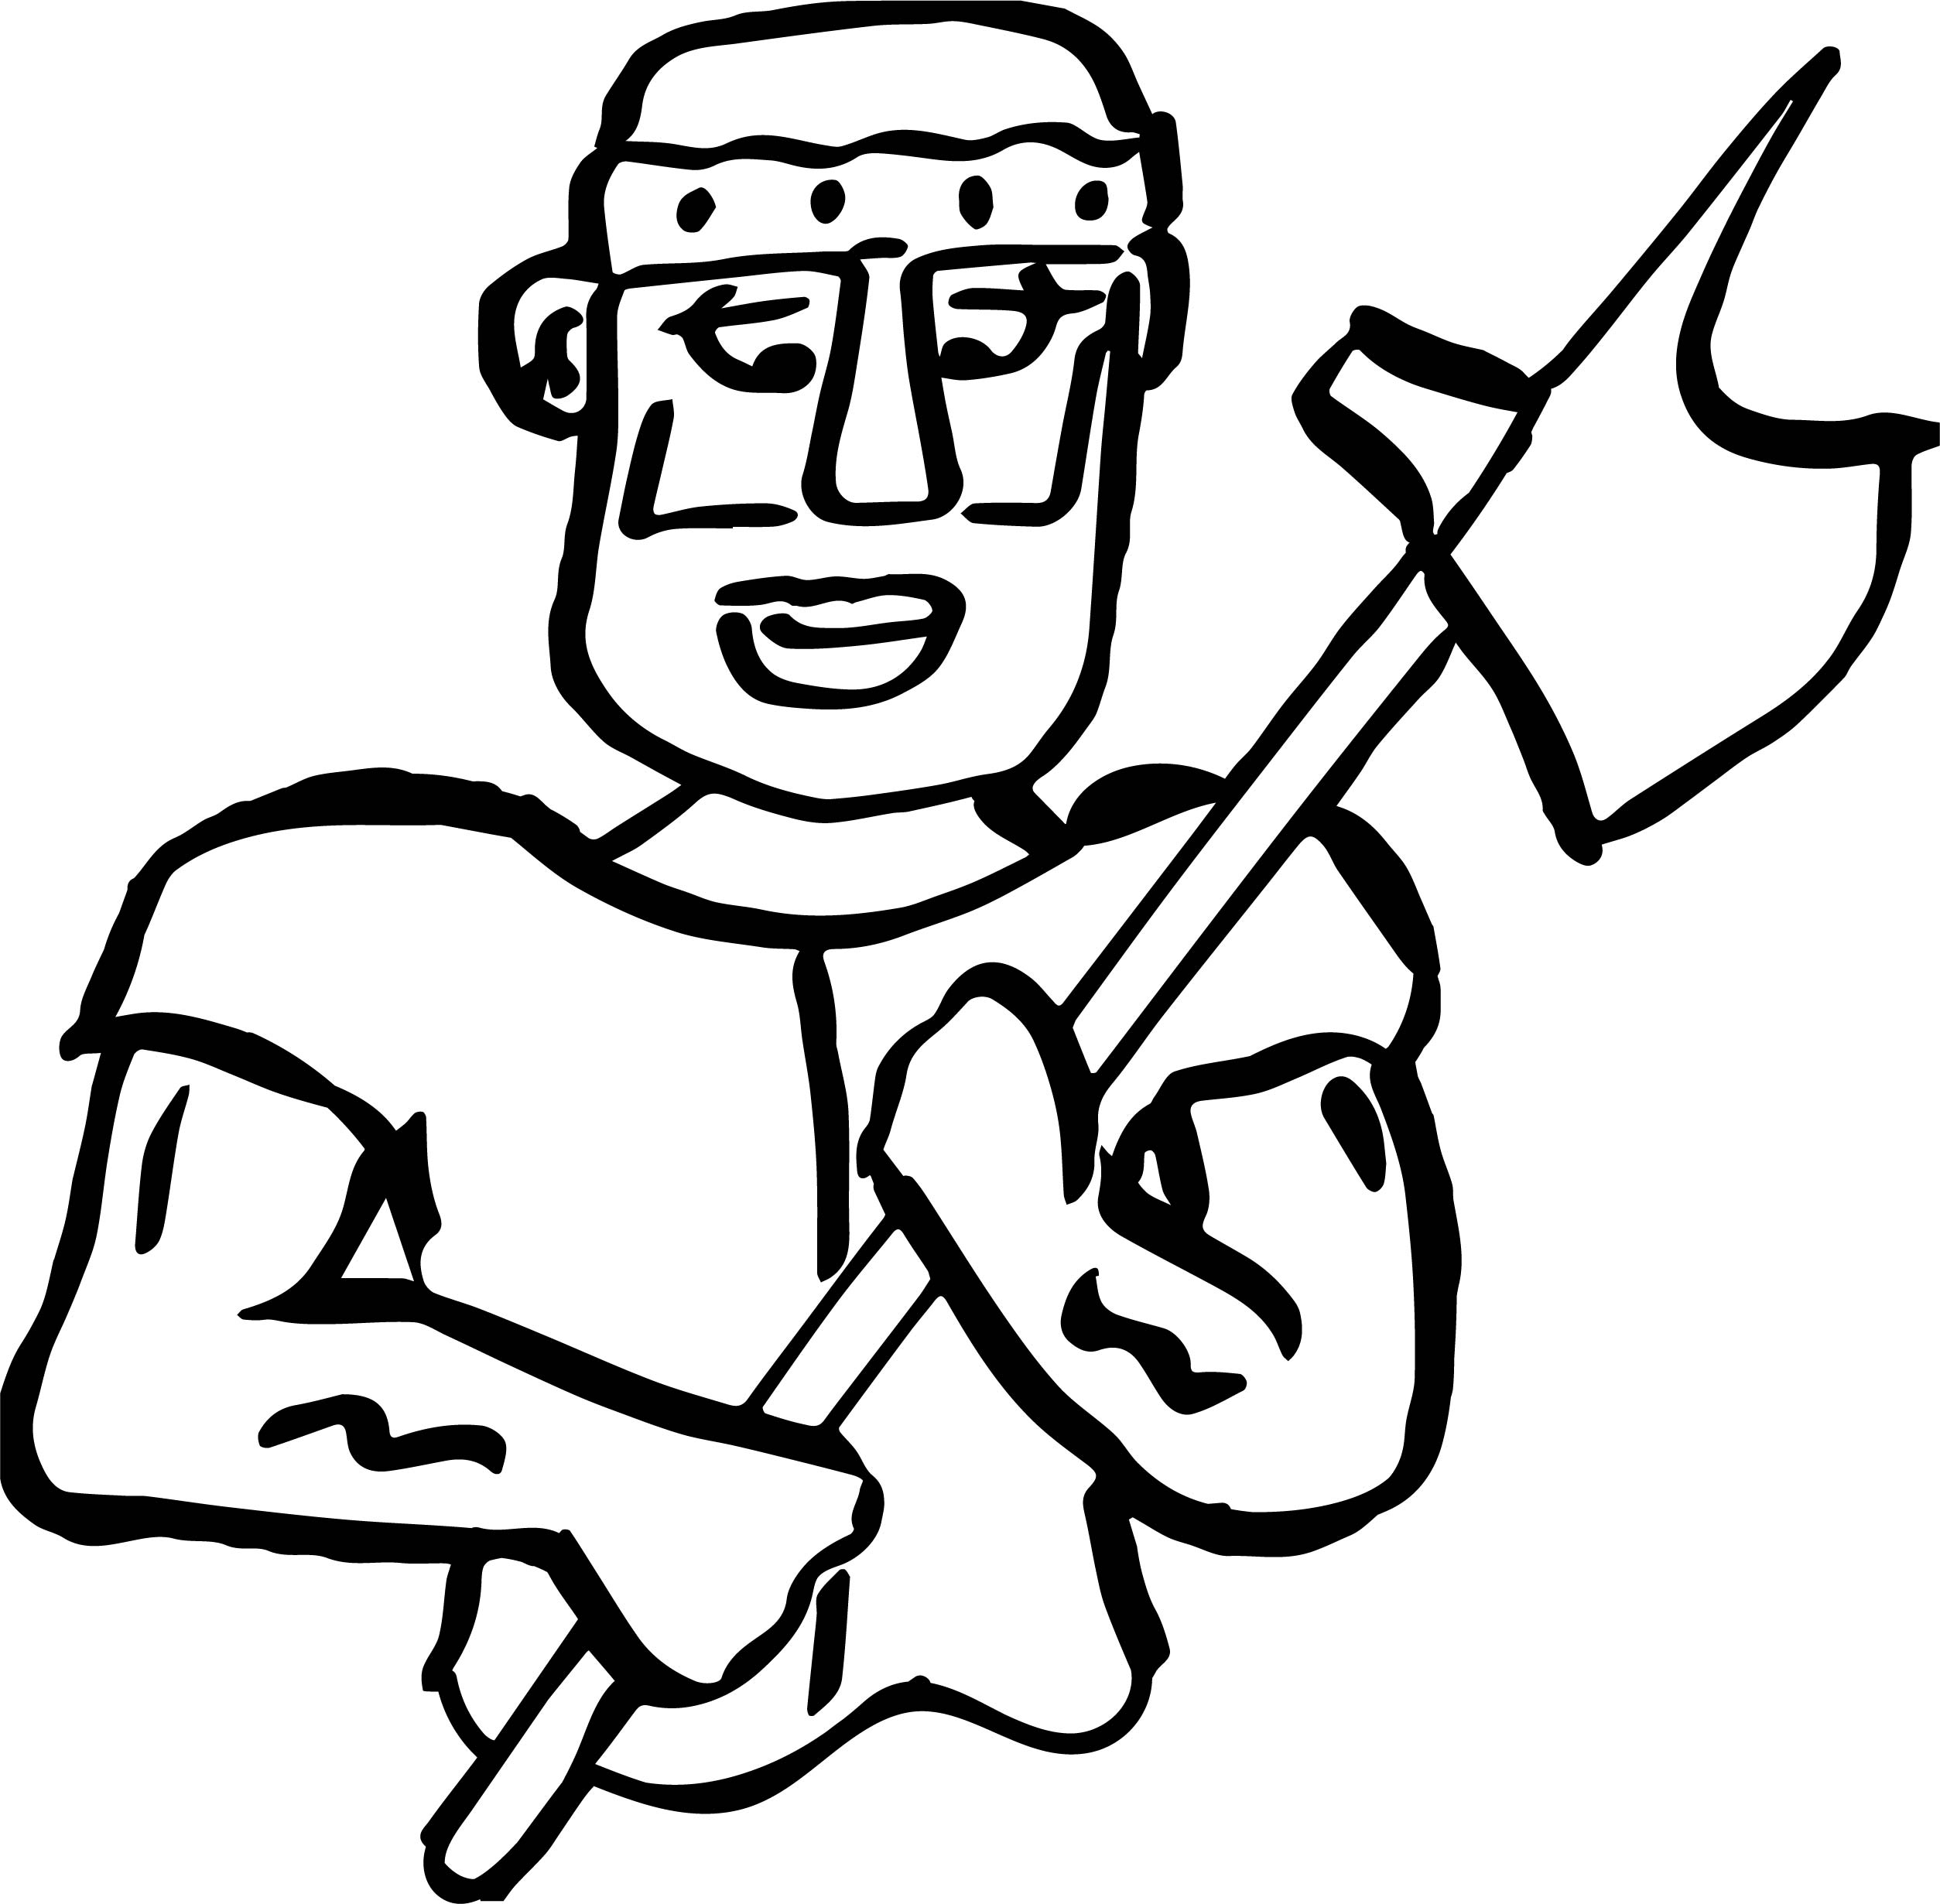 roman soldier axe coloring page wecoloringpagecom